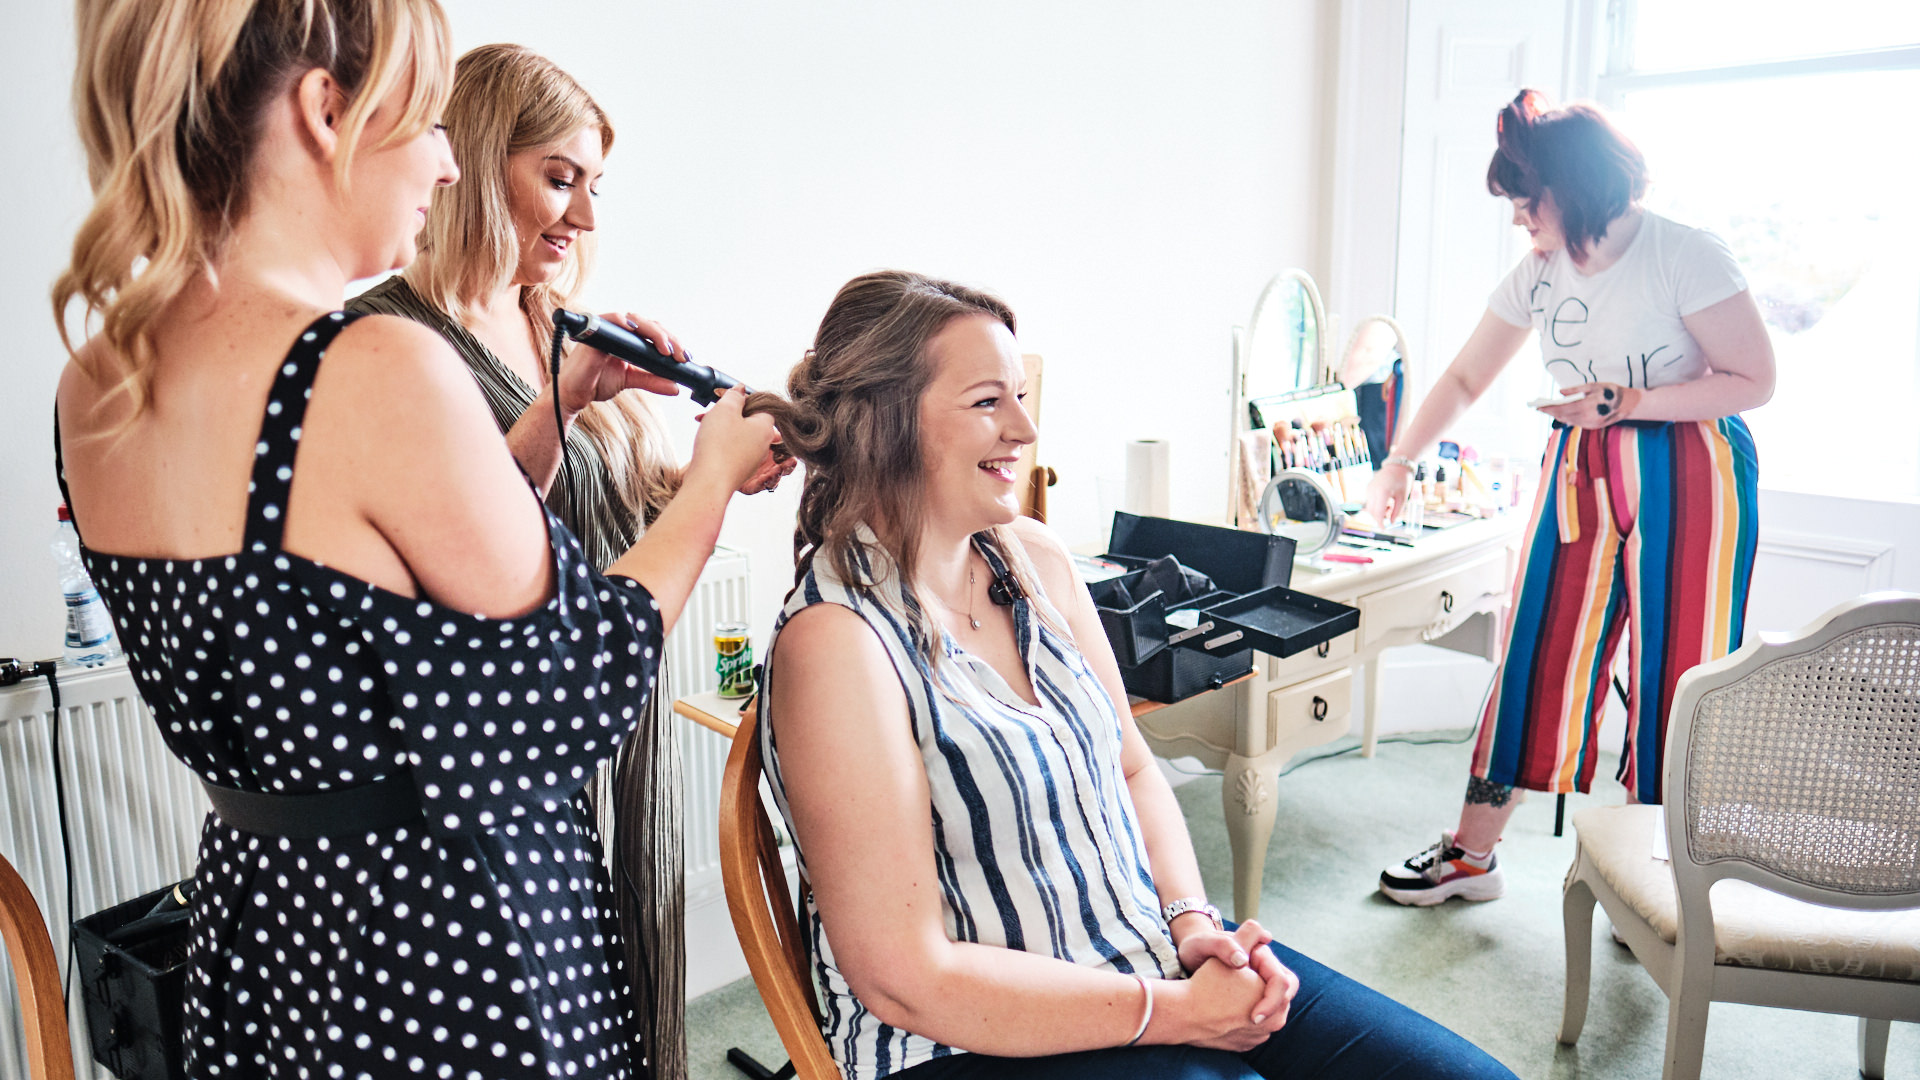 A colour photograph of a bridesmaid having her hair styled before a wedding